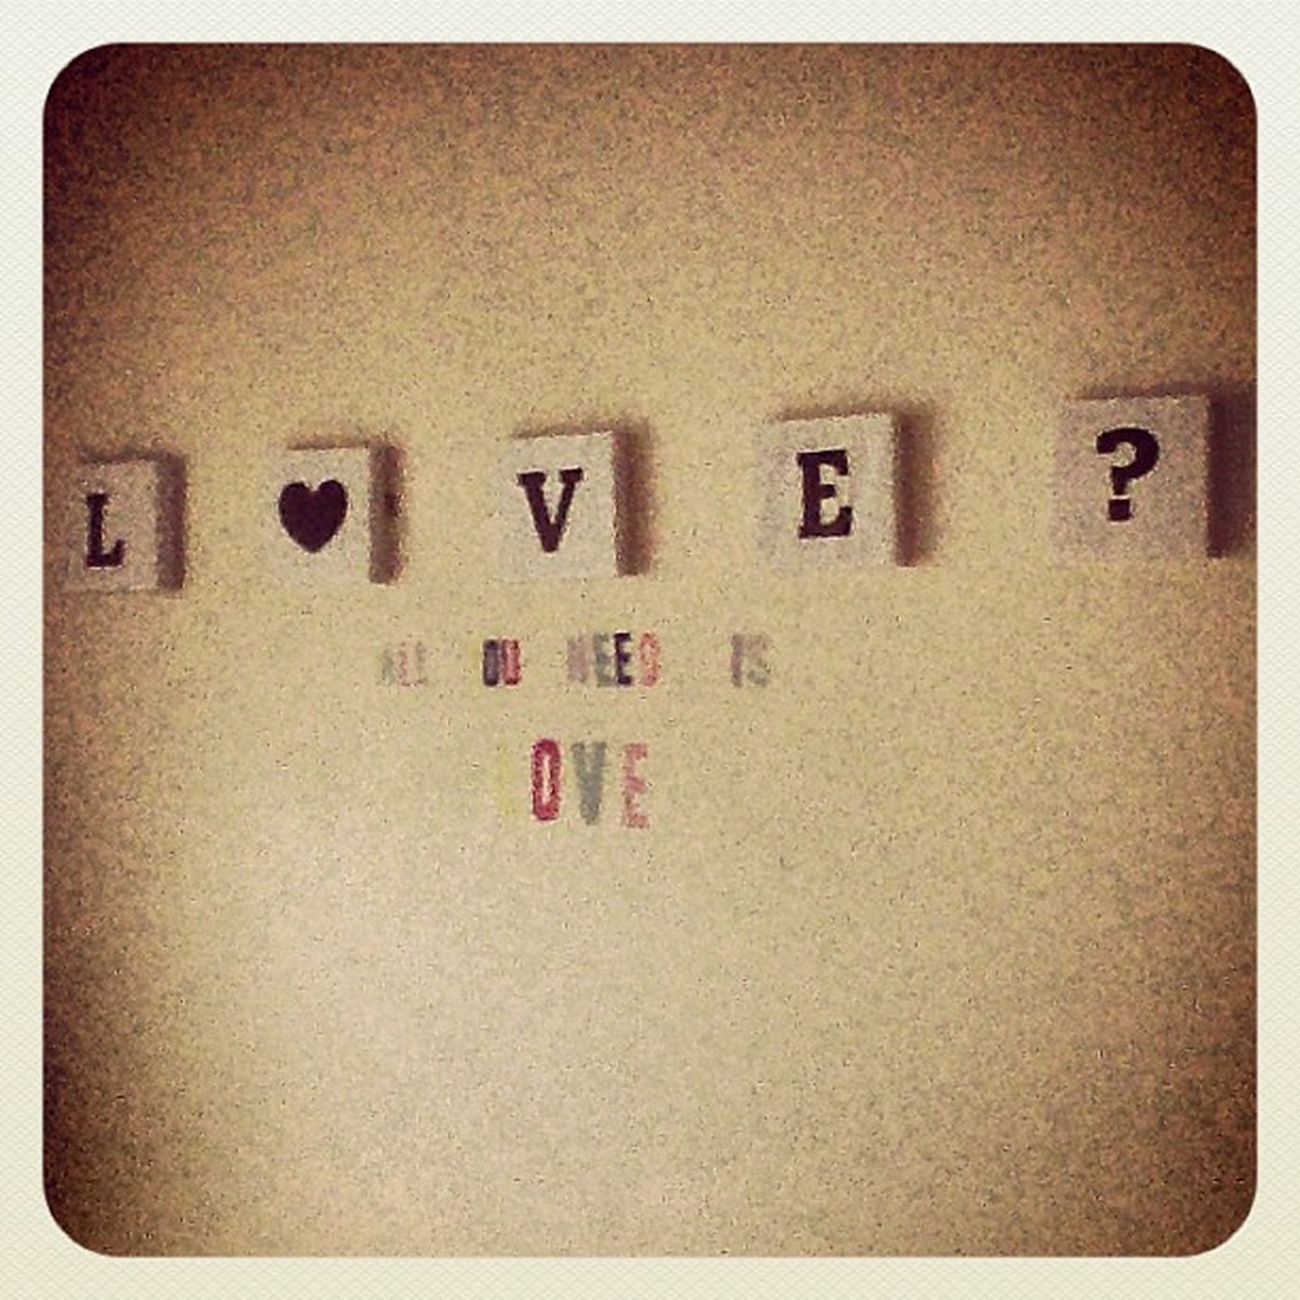 Love? All you need is love. Newroomdecore